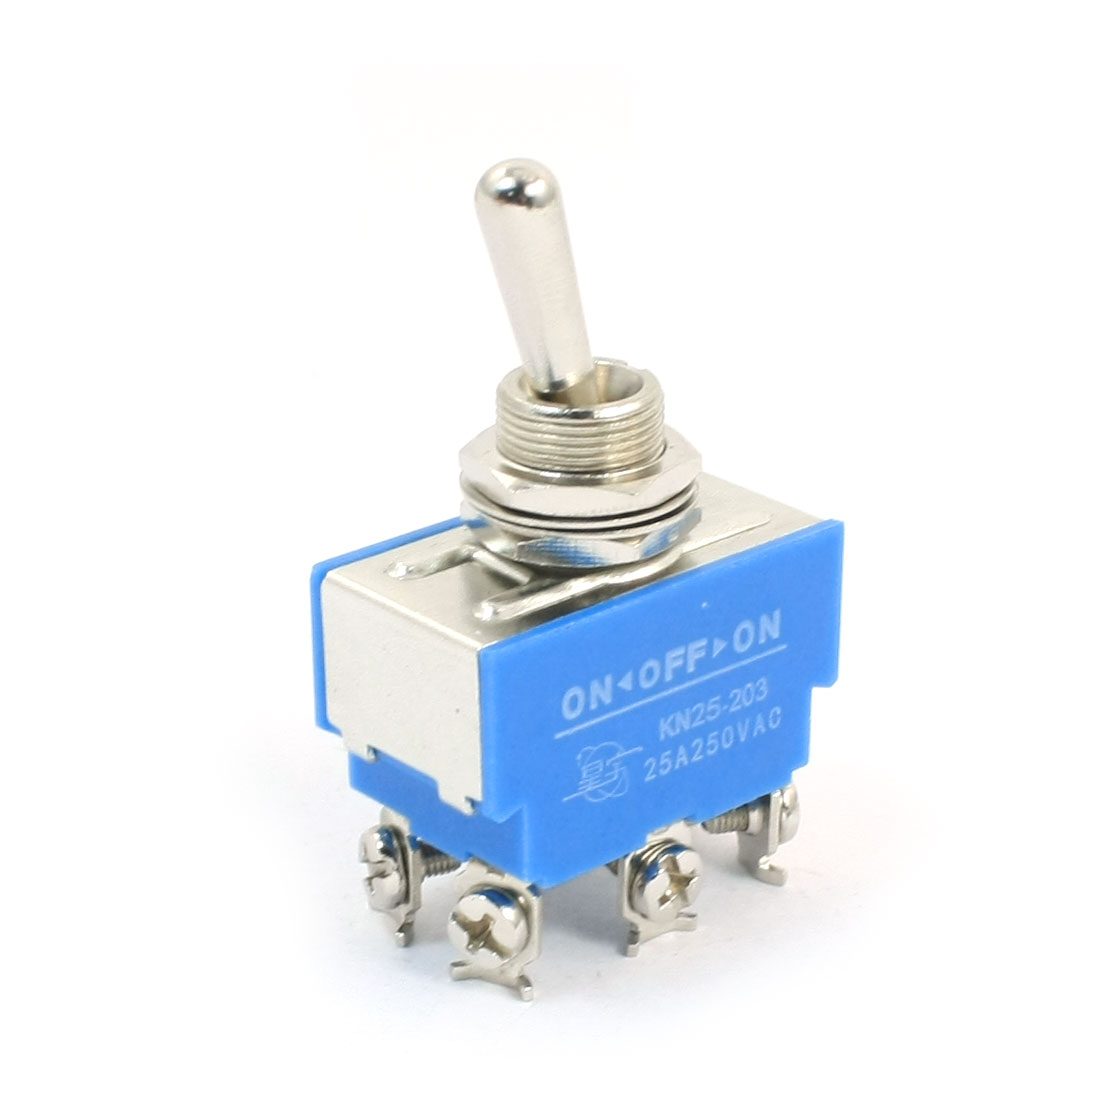 Uxcell Kn25-203 Dpdt 3 Positions On/Off/On Locking Toggle Switch Blue Ac250v 25A . | 12pin | 3pin | 4pin | 6pin | 9pin | pin uxcell 10 pcs single unit pushwheel thumbwheel switch km1 0 9